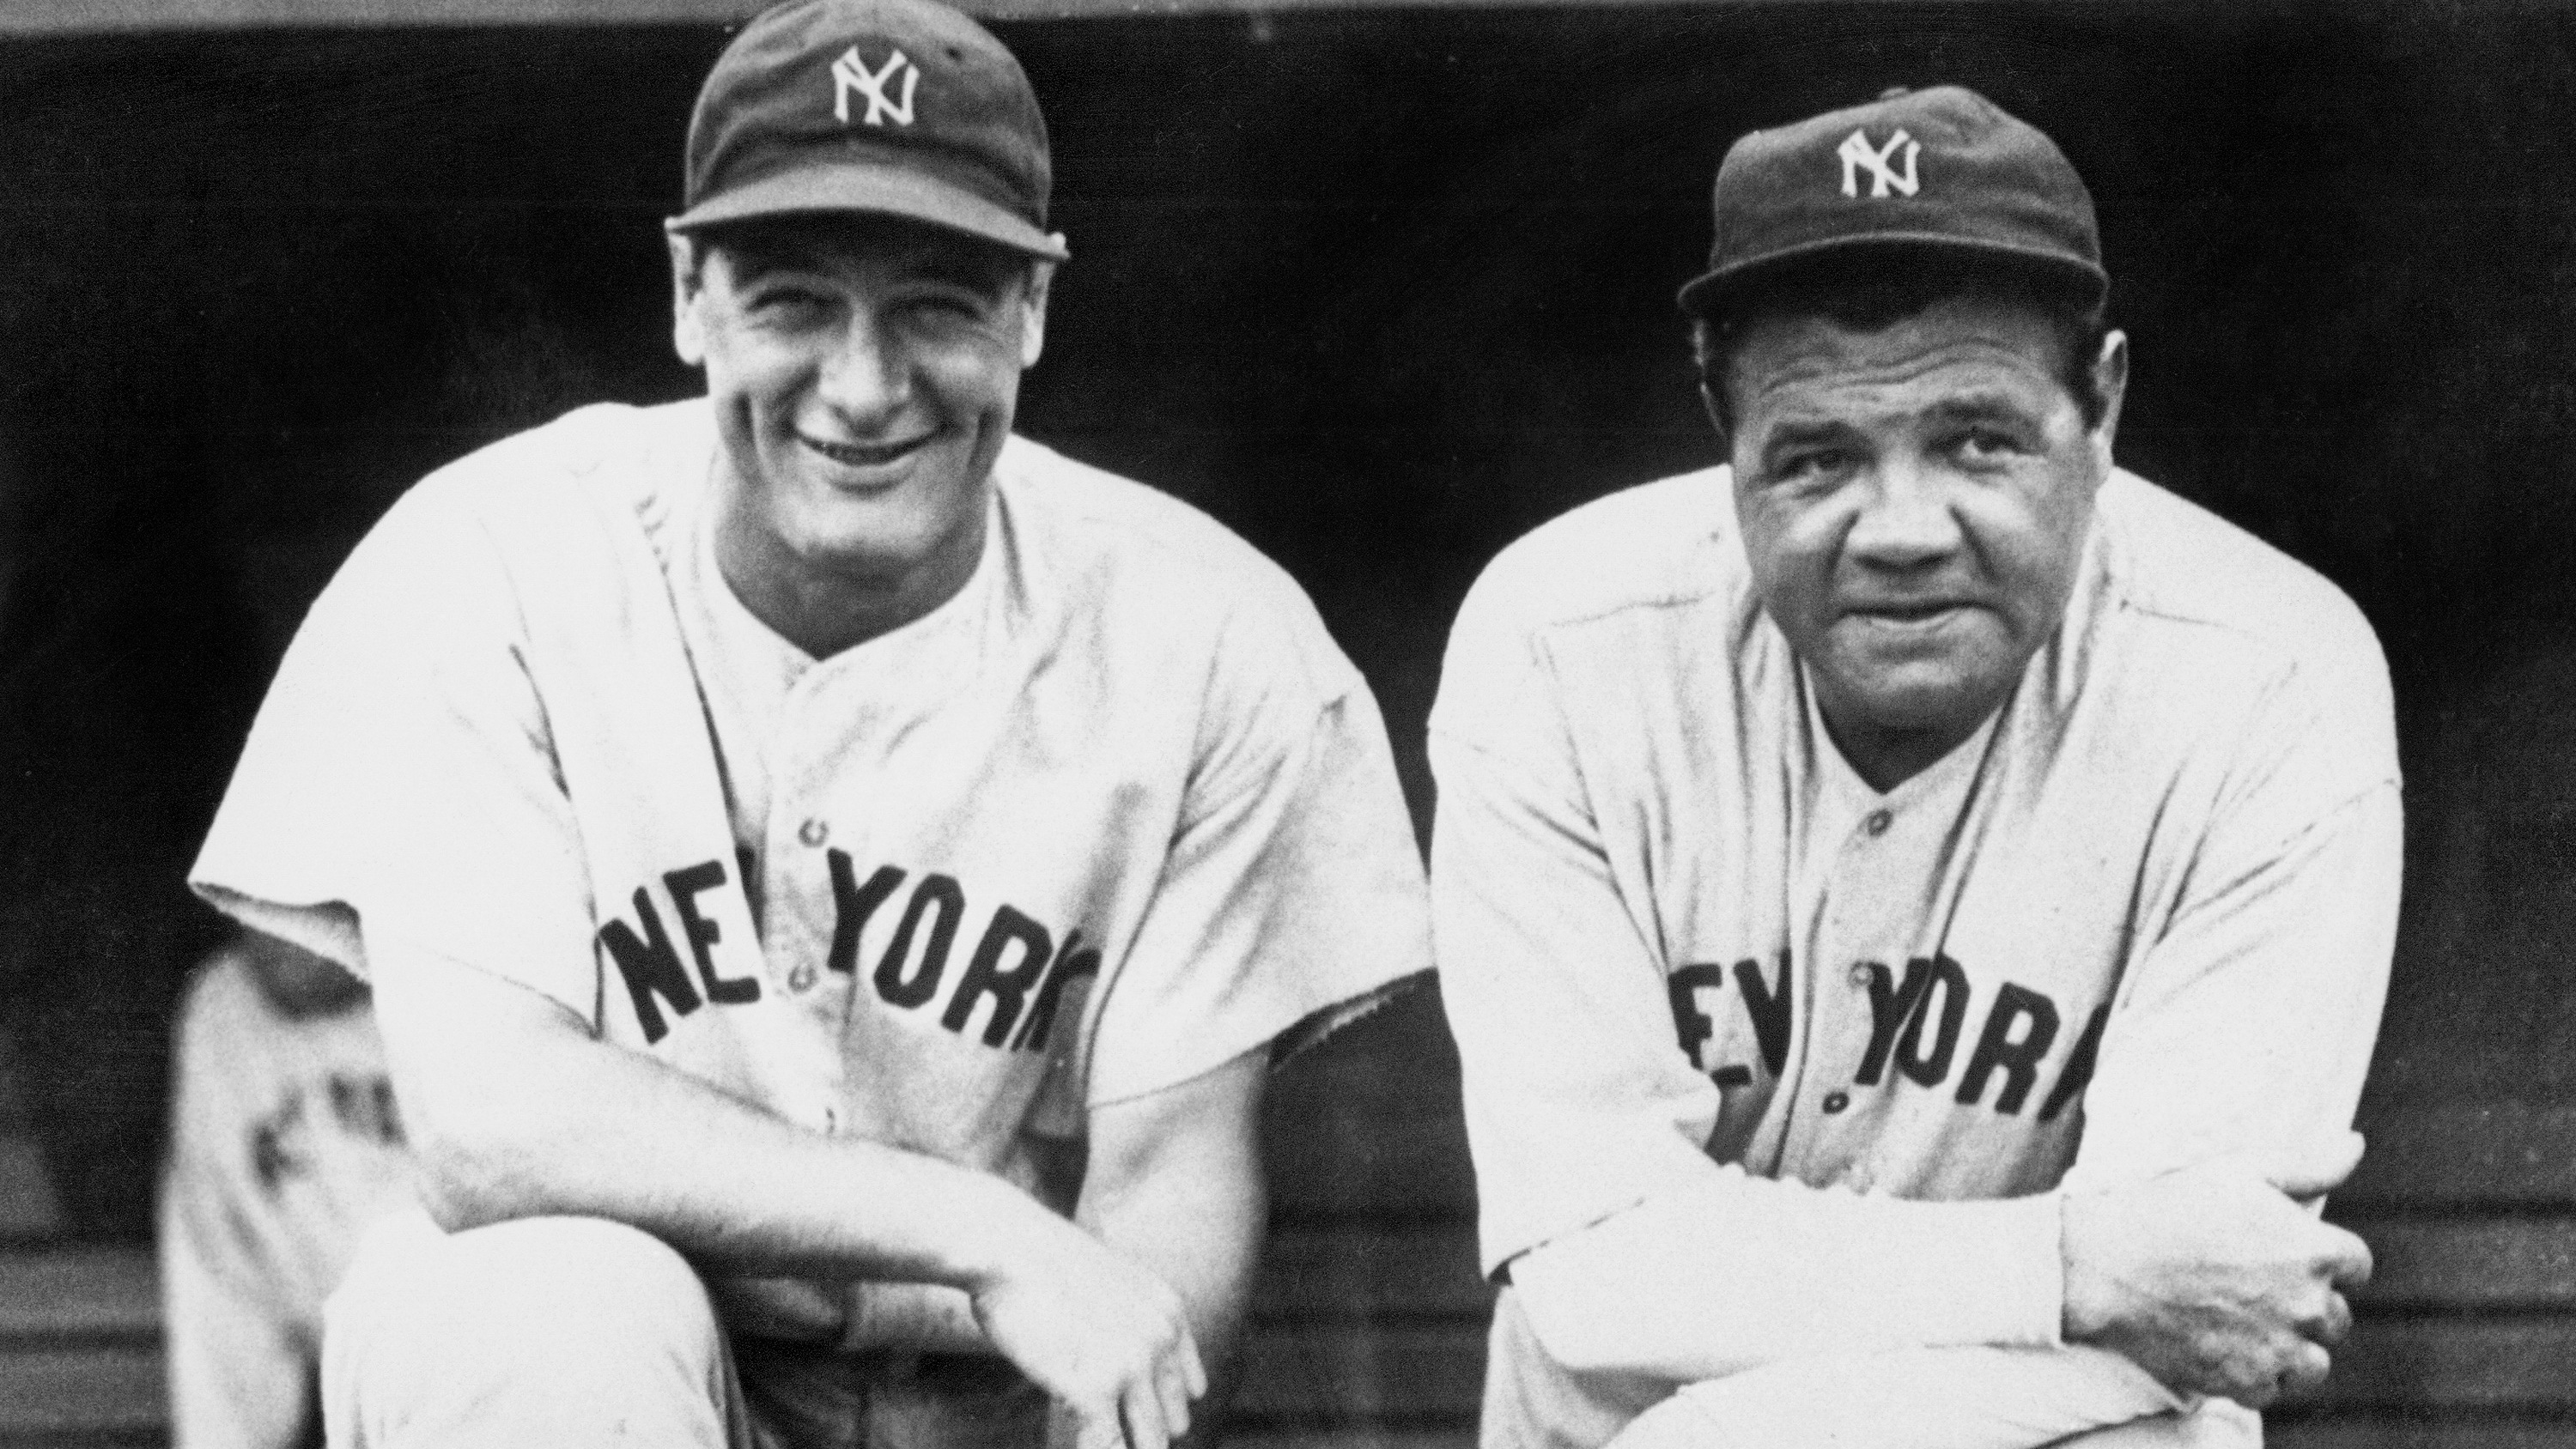 The photo shows Lou Gherig smiling while leaning on one knee propped on a dugout bench next to Babe Ruth.